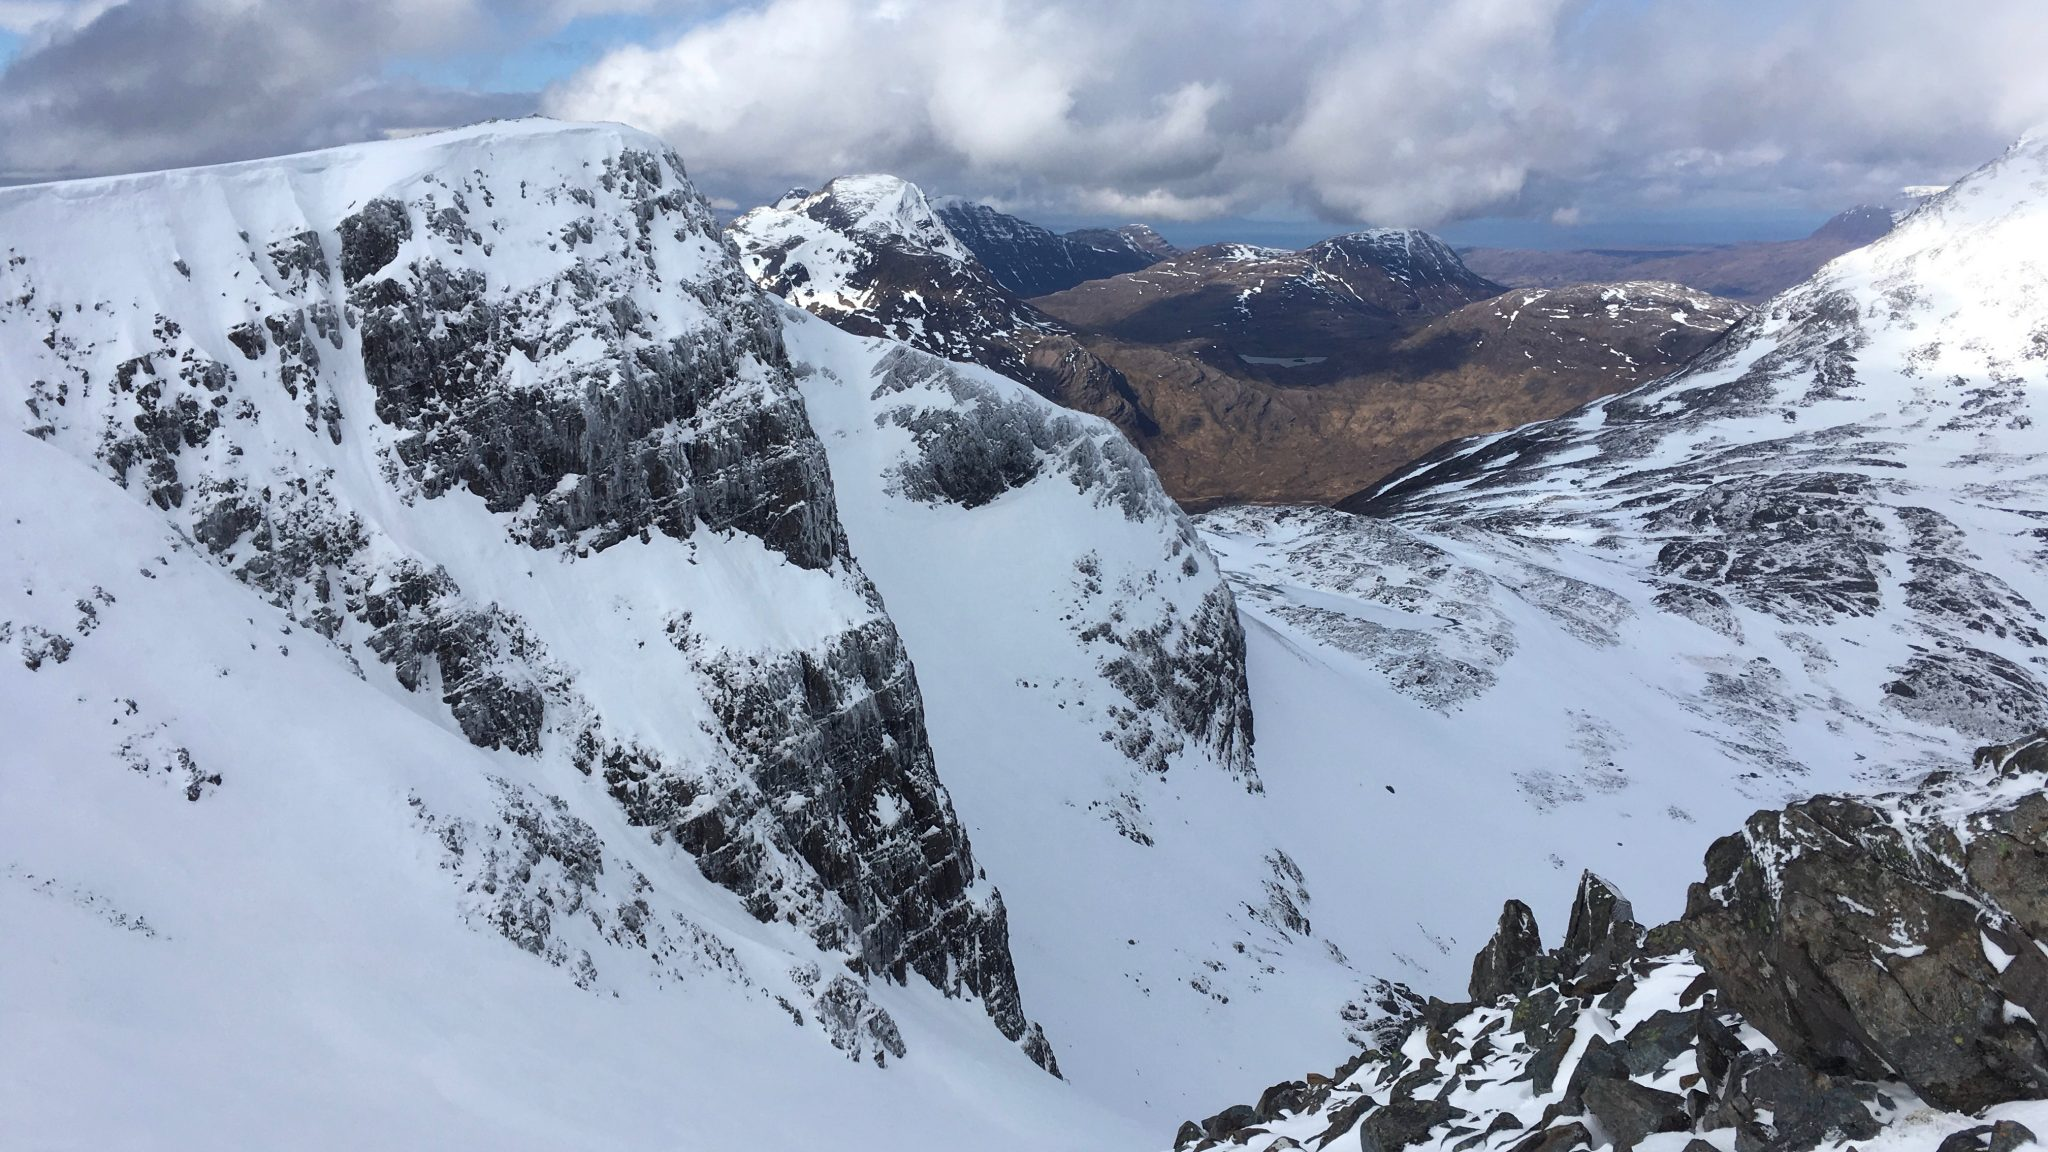 The view down a steep snow gully while out in the Scottish Highlands in winter practising winter navigation